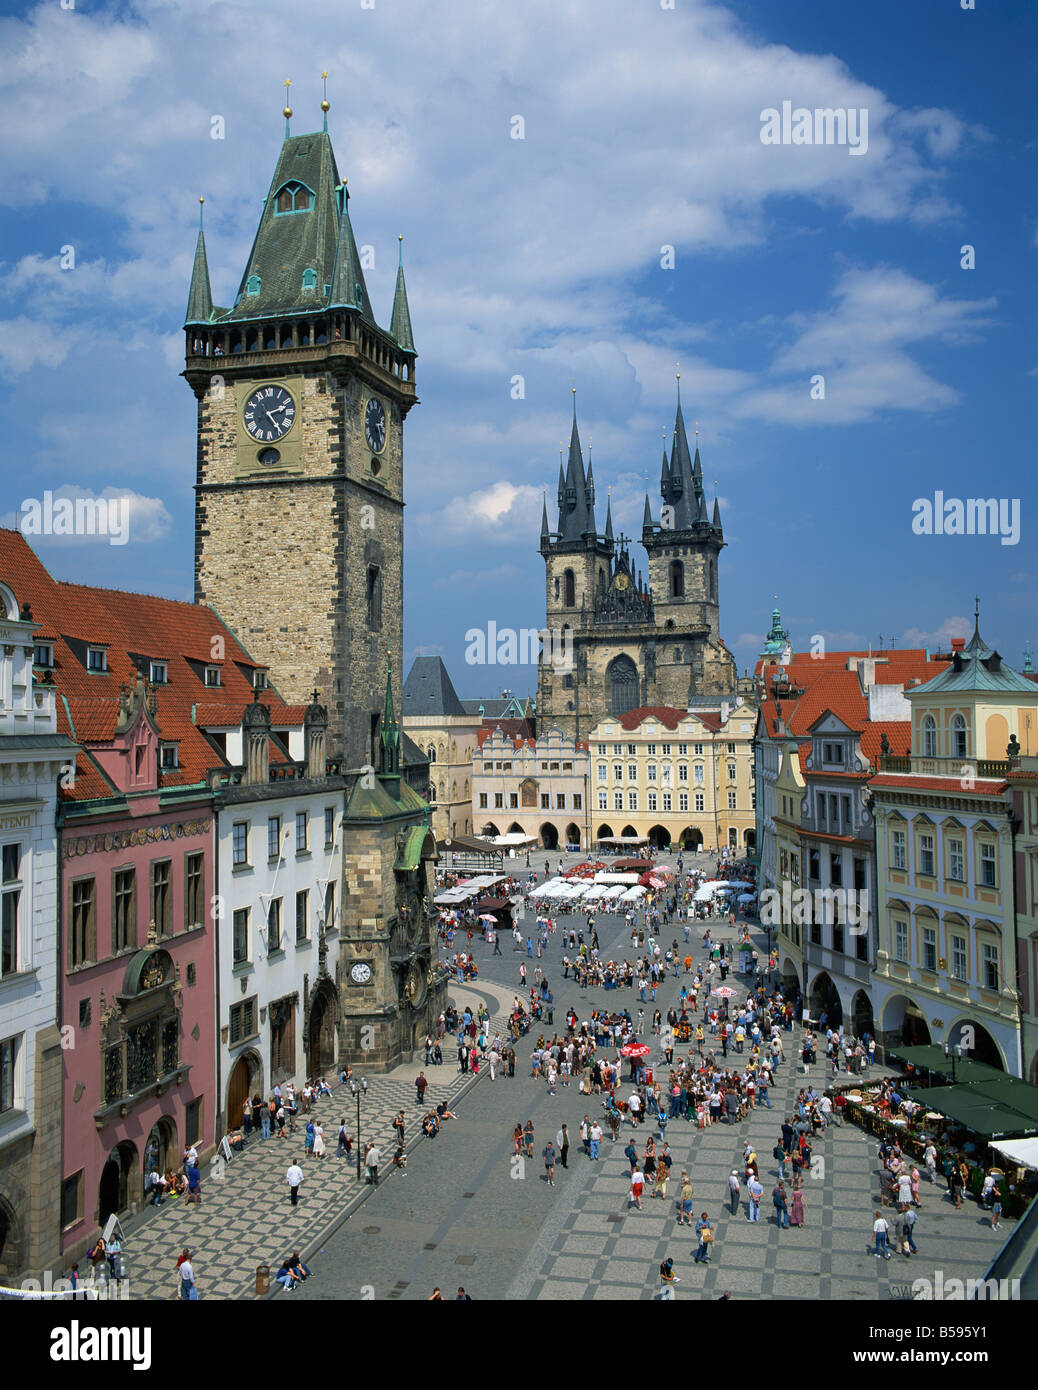 Stare Mesto Square the Gothic Tyn Church and Town Hall in the city of Prague Czech Republic G Hellier - Stock Image